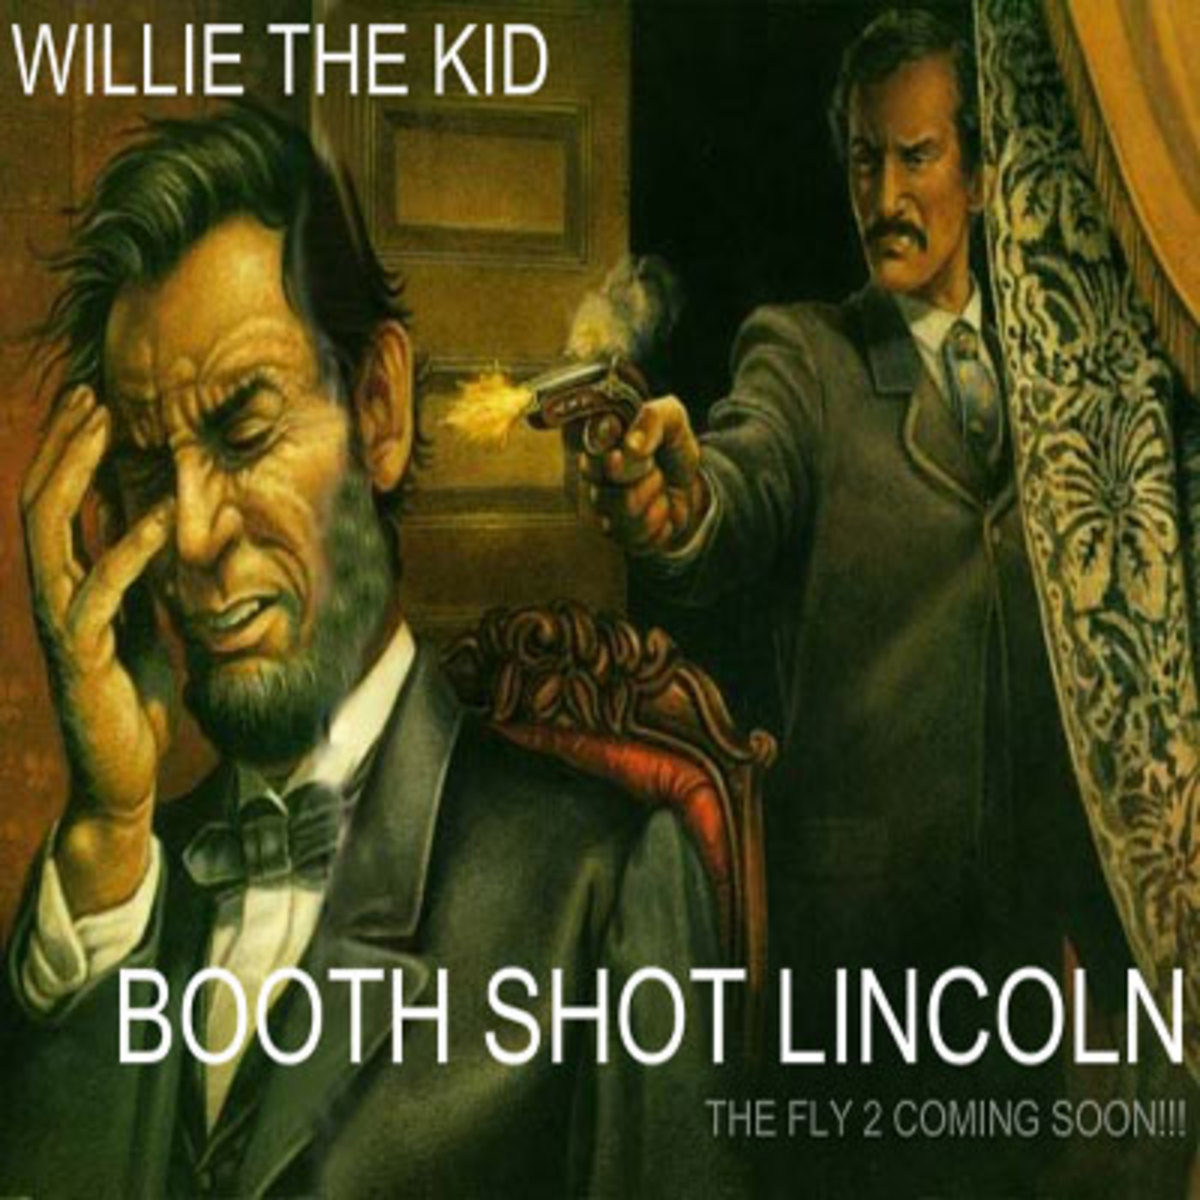 williethekid-boothshotlincoln.jpg